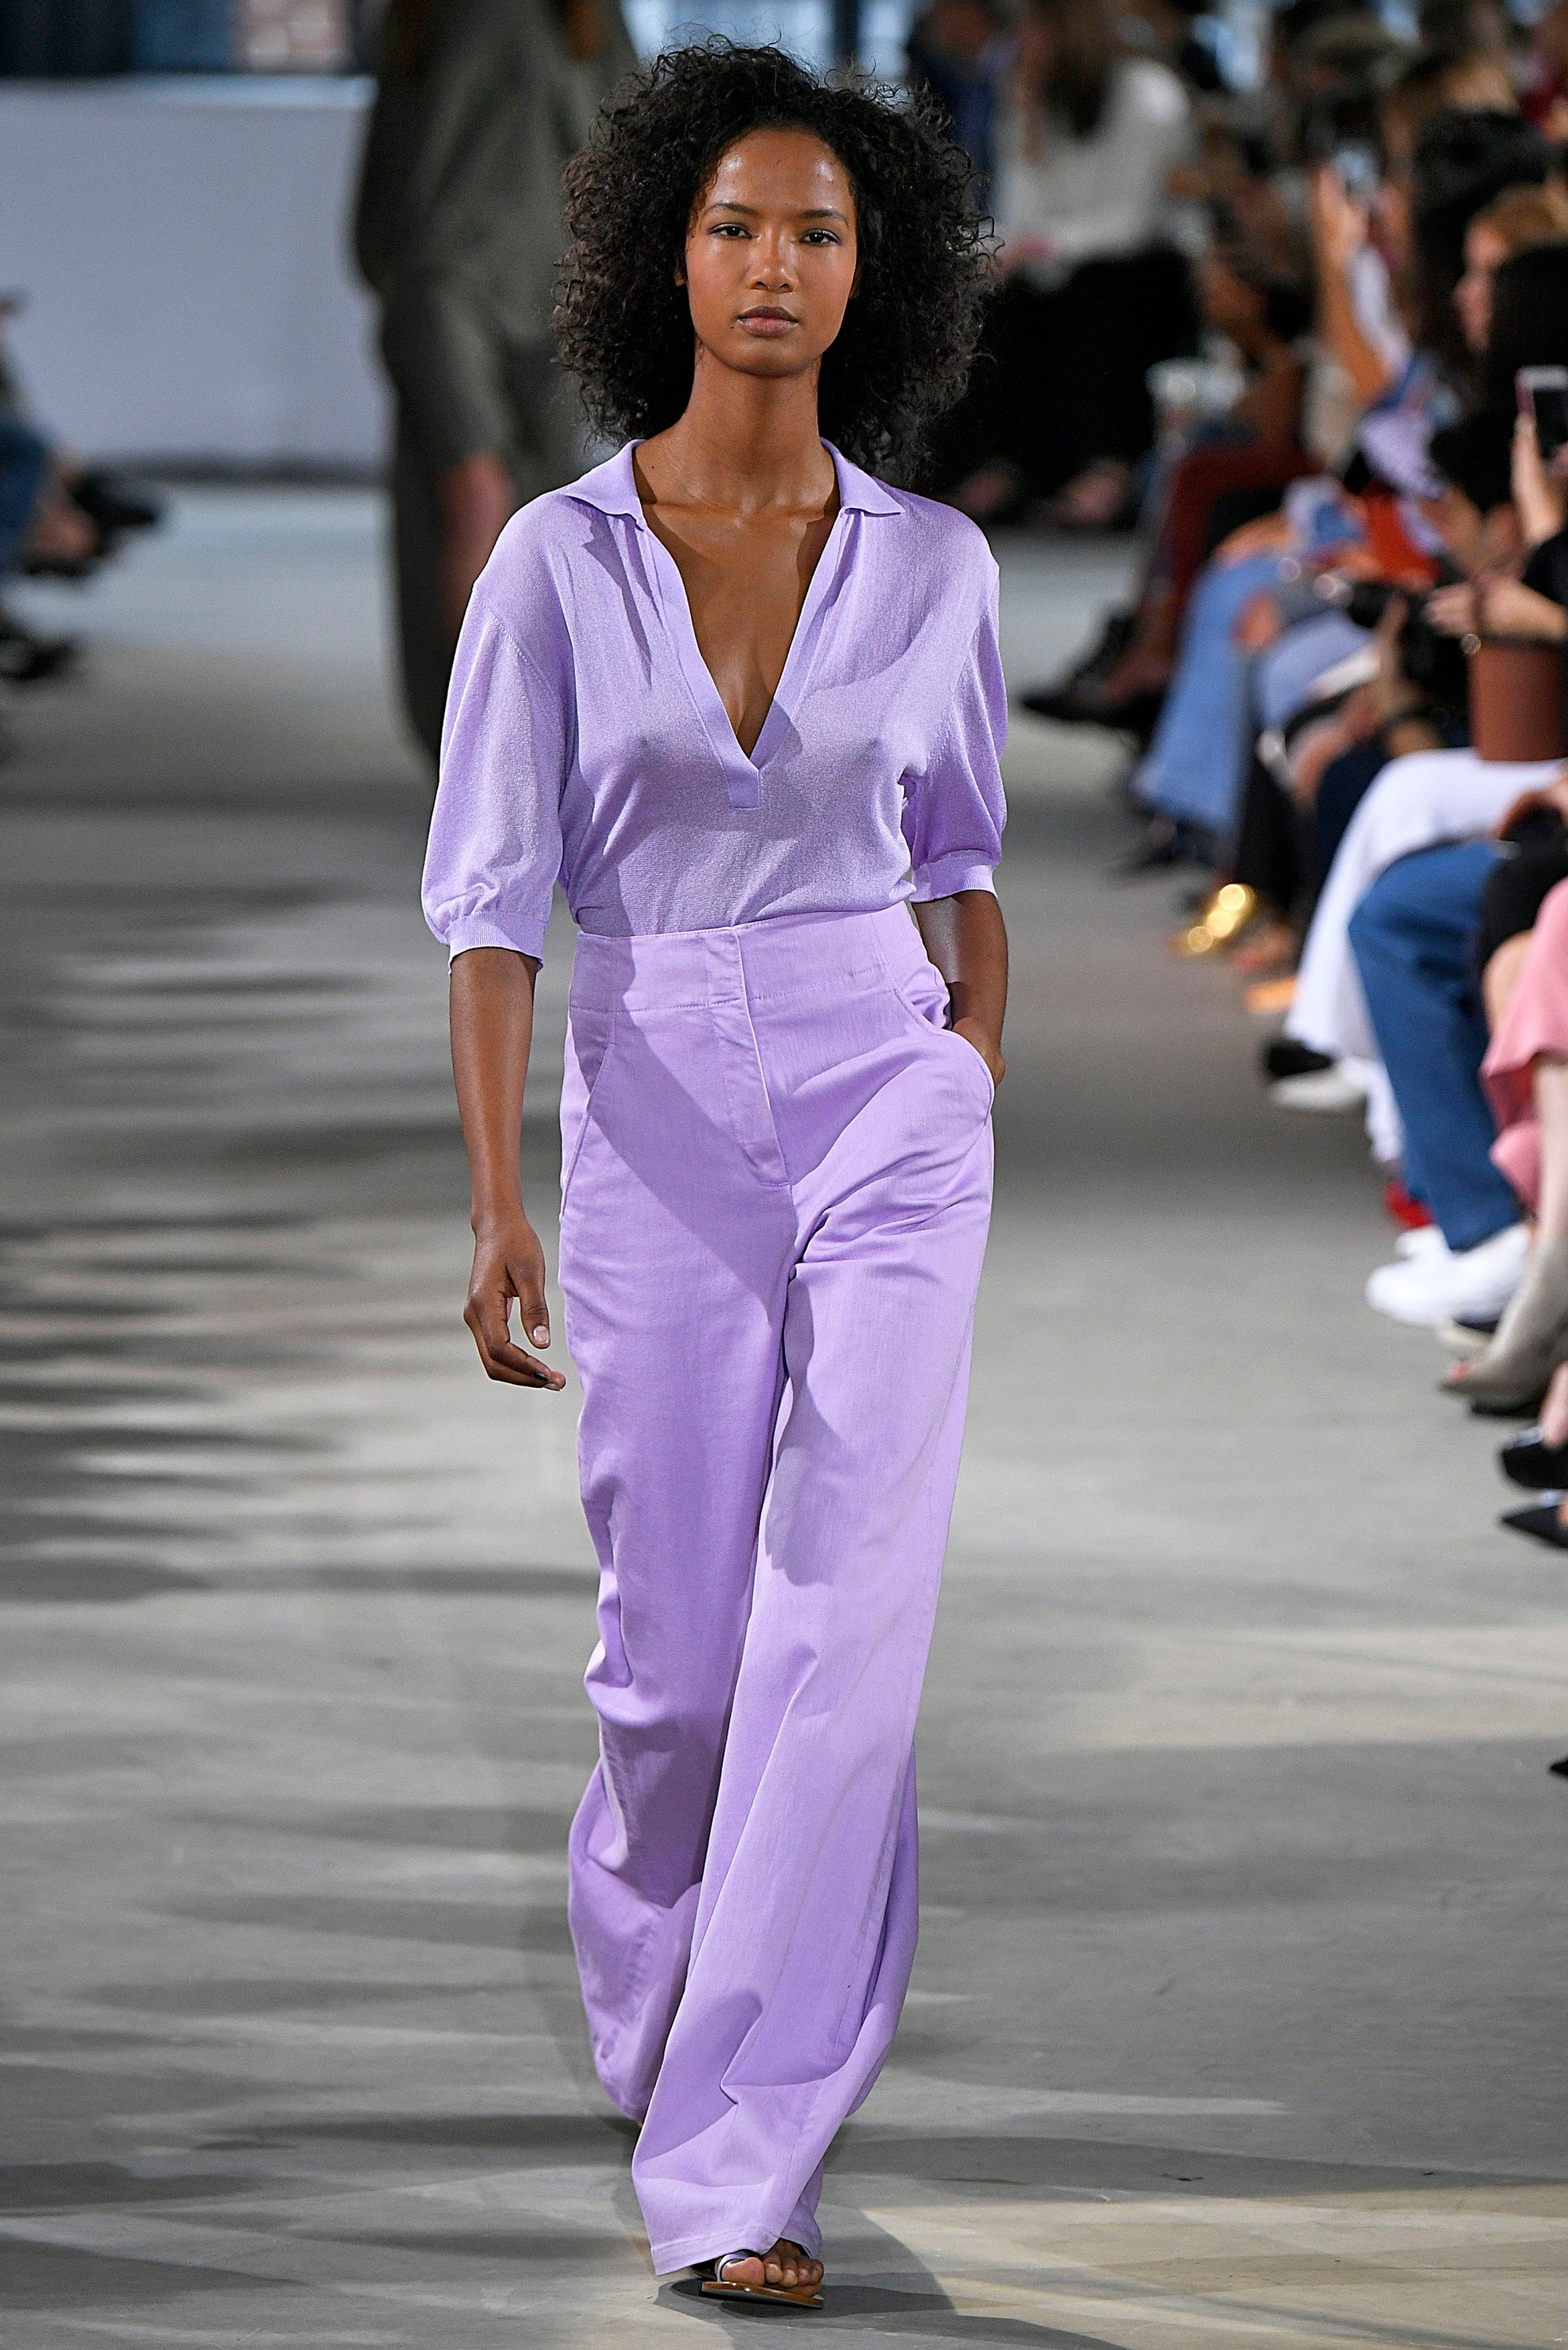 Ariela Soares walks on the runway during the Tibi Fashion show at New York Fashion Week Spring Summer 2018 held in New York, NY on September 9, 2017., Image: 348875545, License: Rights-managed, Restrictions: *** World Rights ***, Model Release: no, Credit line: Profimedia, SIPA USA